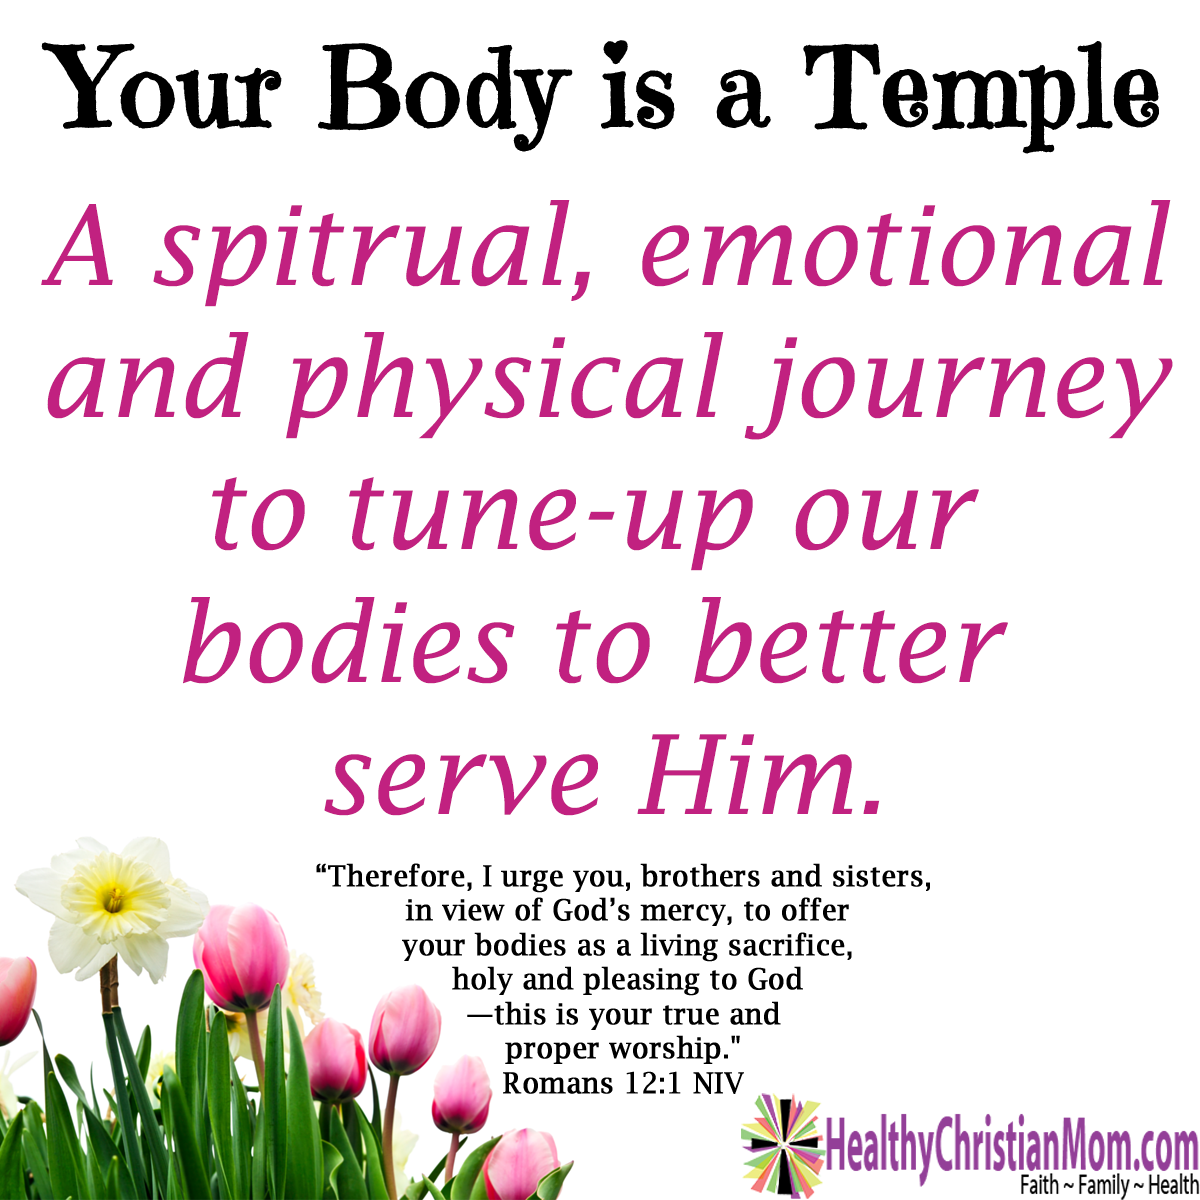 Your Body is a Temple: Preparing to Serve